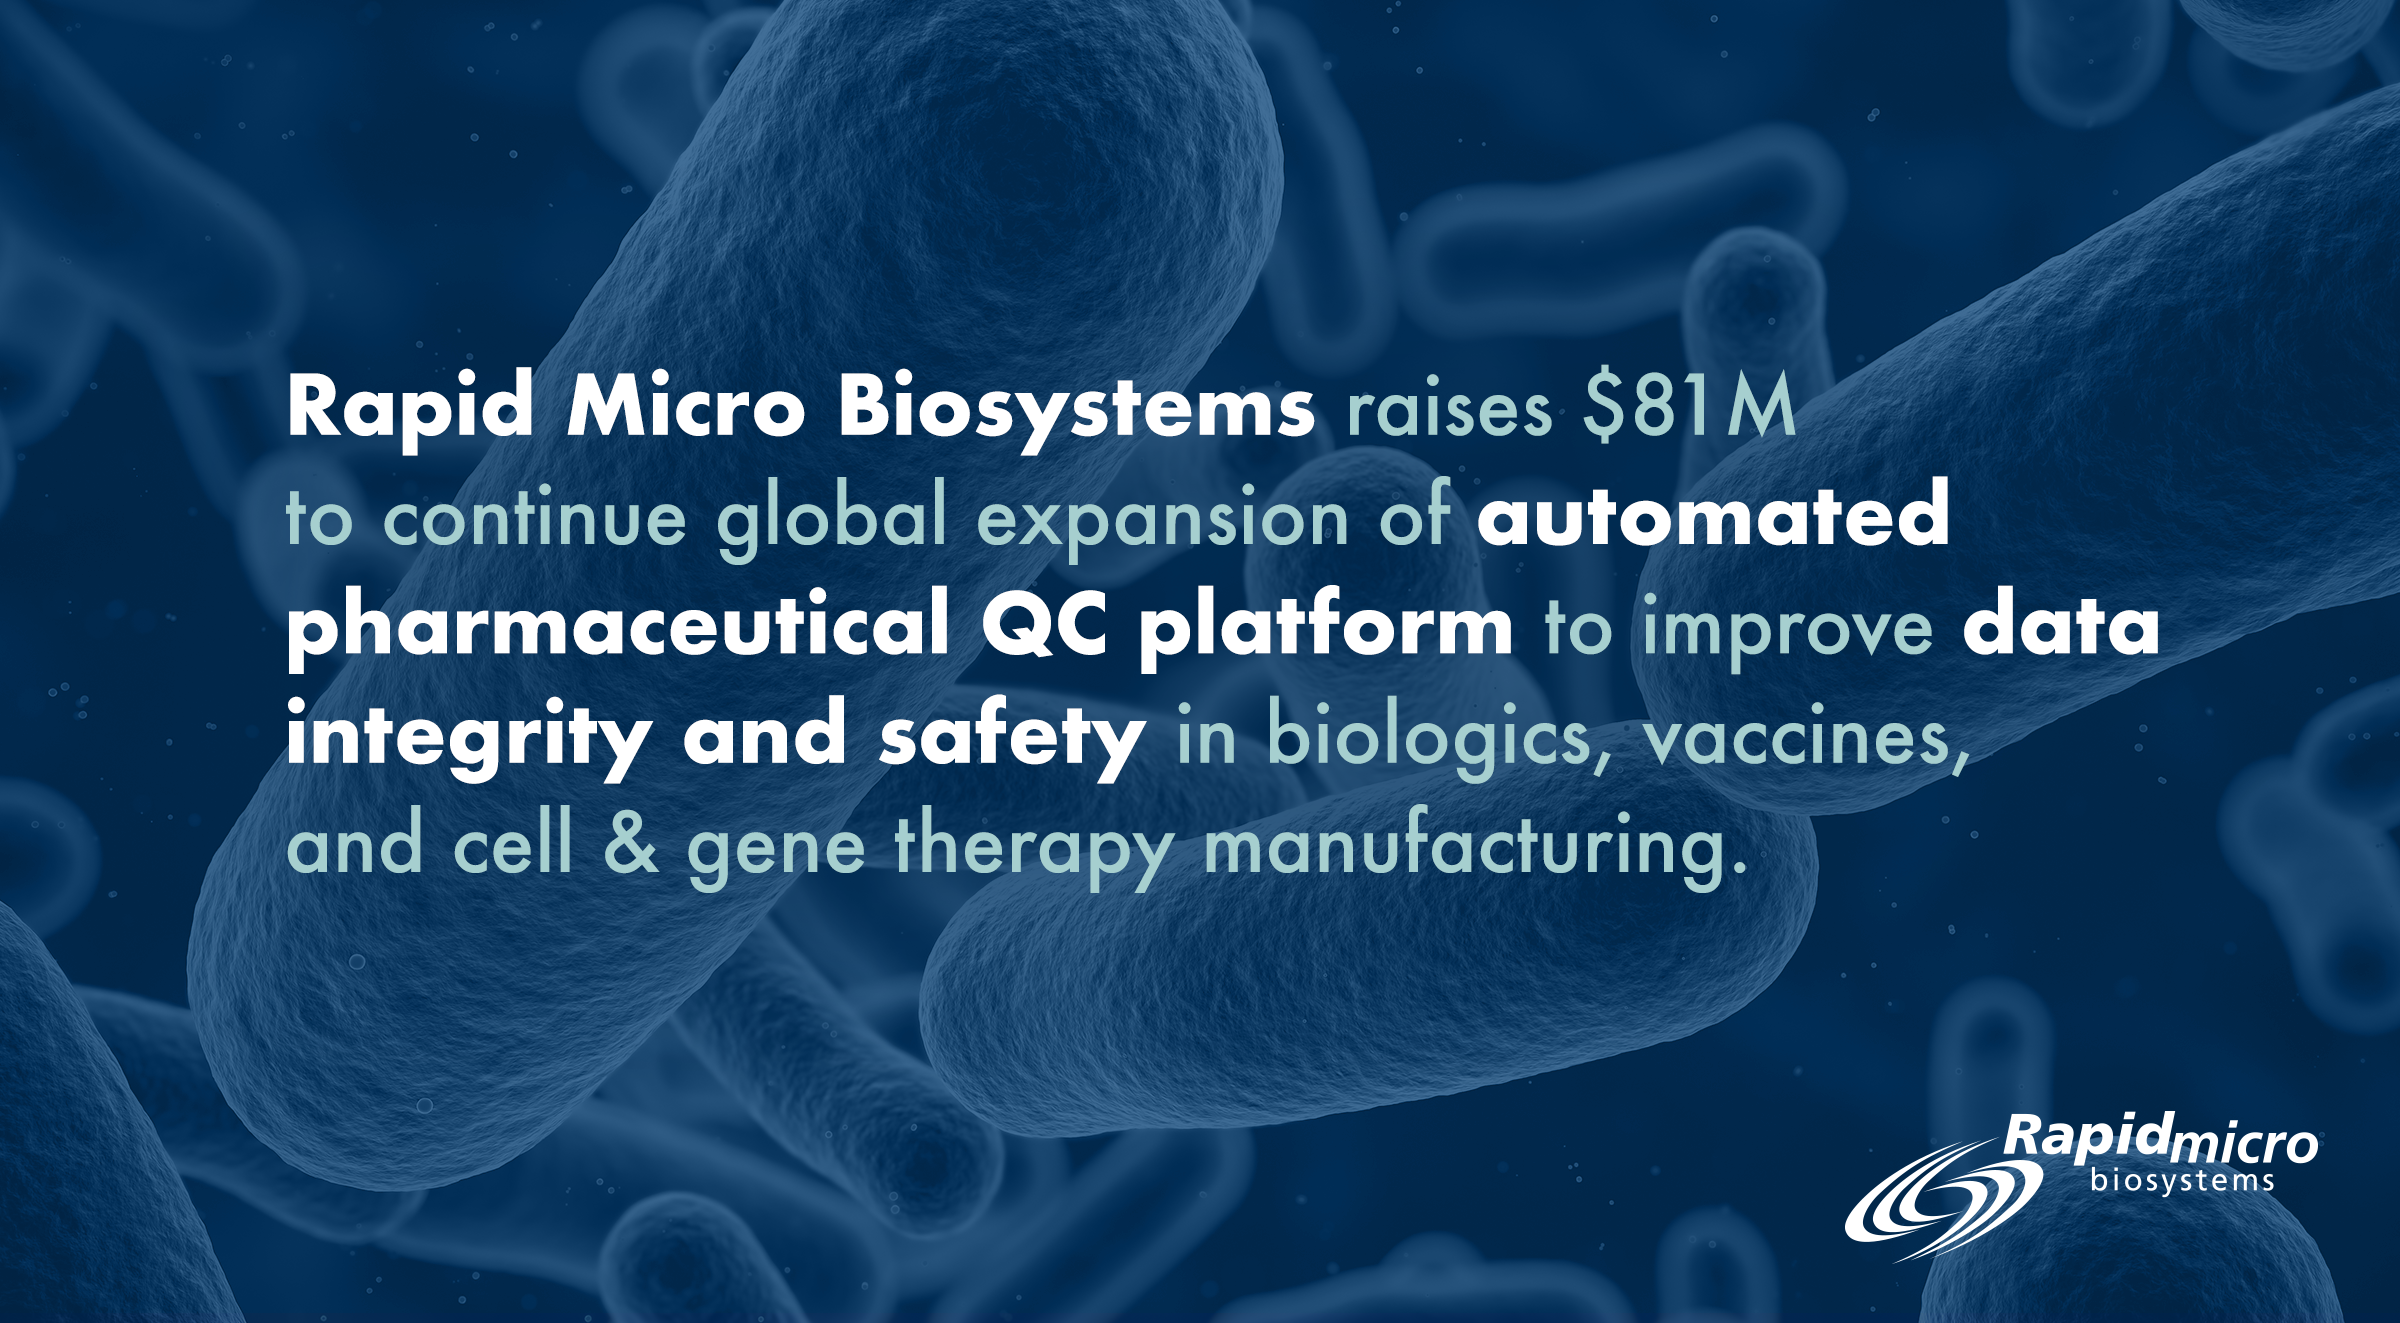 Rapid Micro Biosystems, Inc. announced the completion of an $81 million equity financing